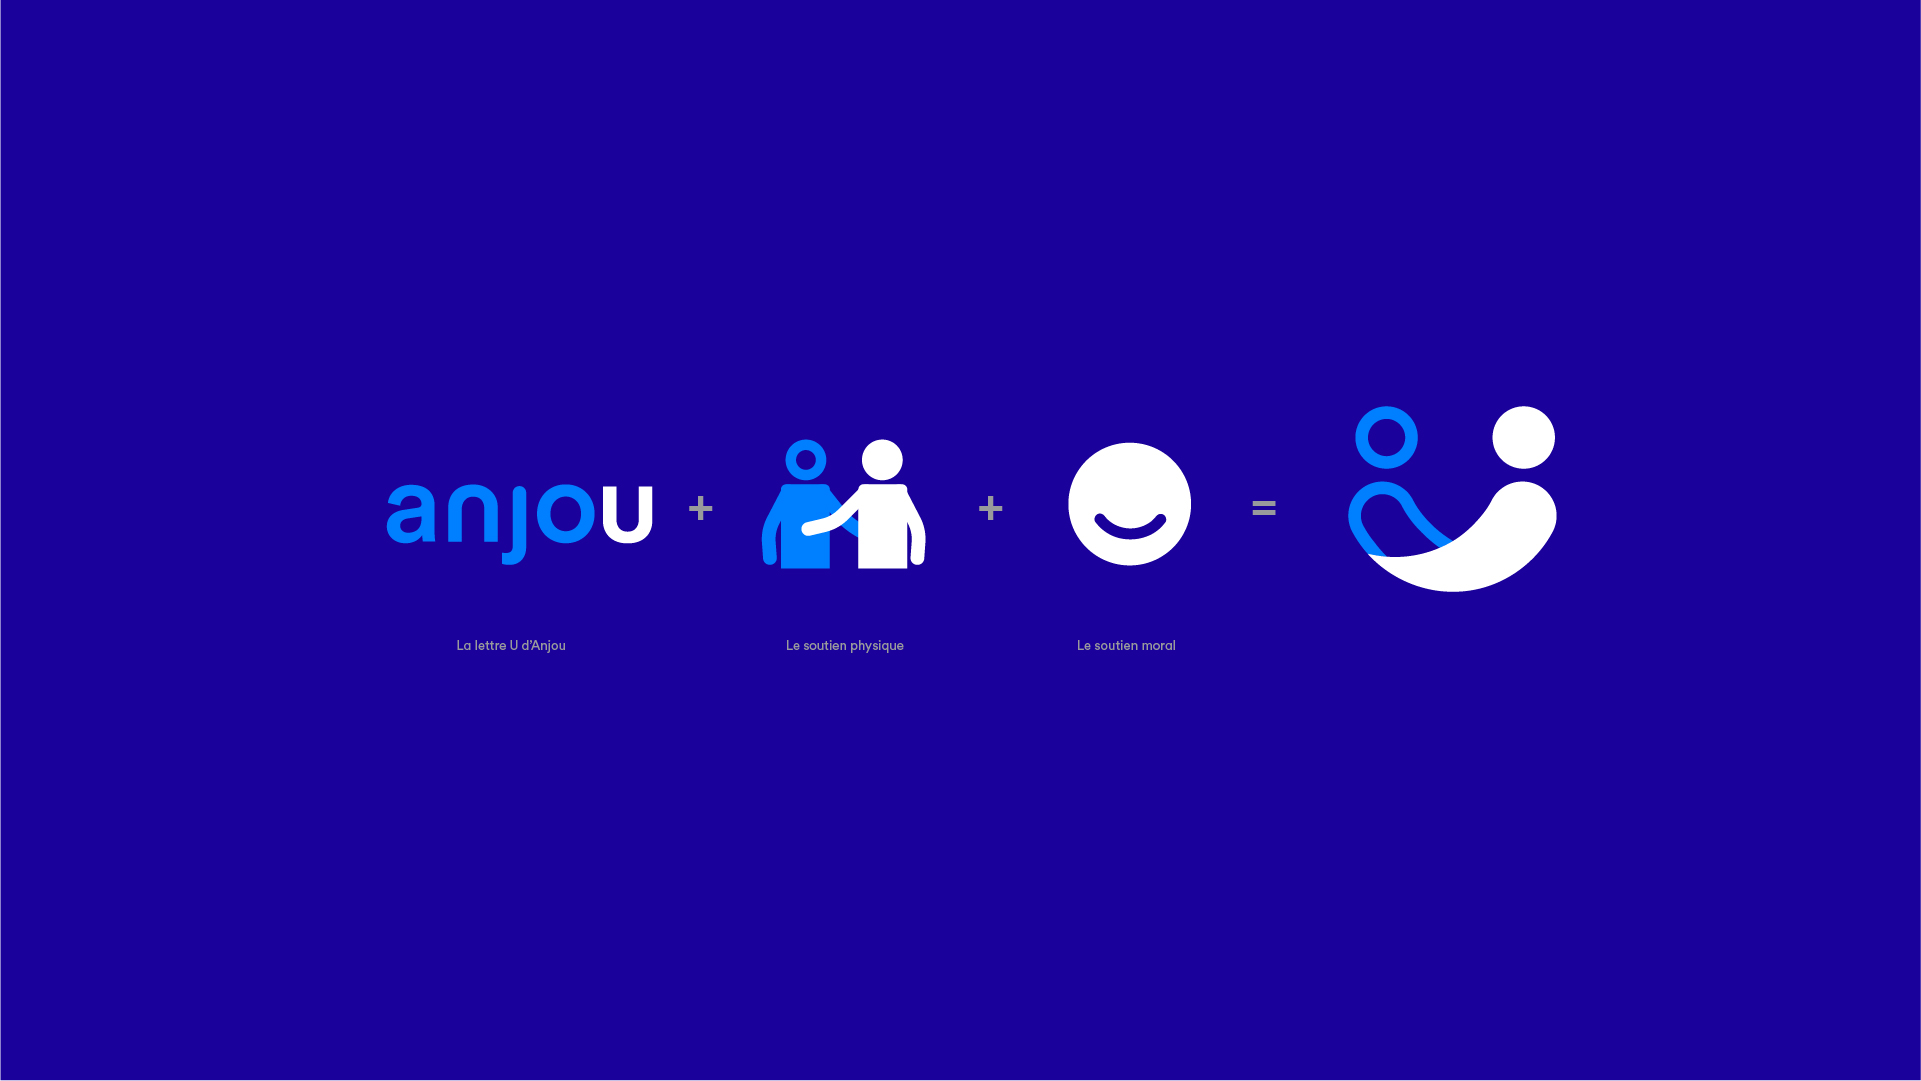 Anjou Accompagnement Association Identite Visuelle Logotype Concept